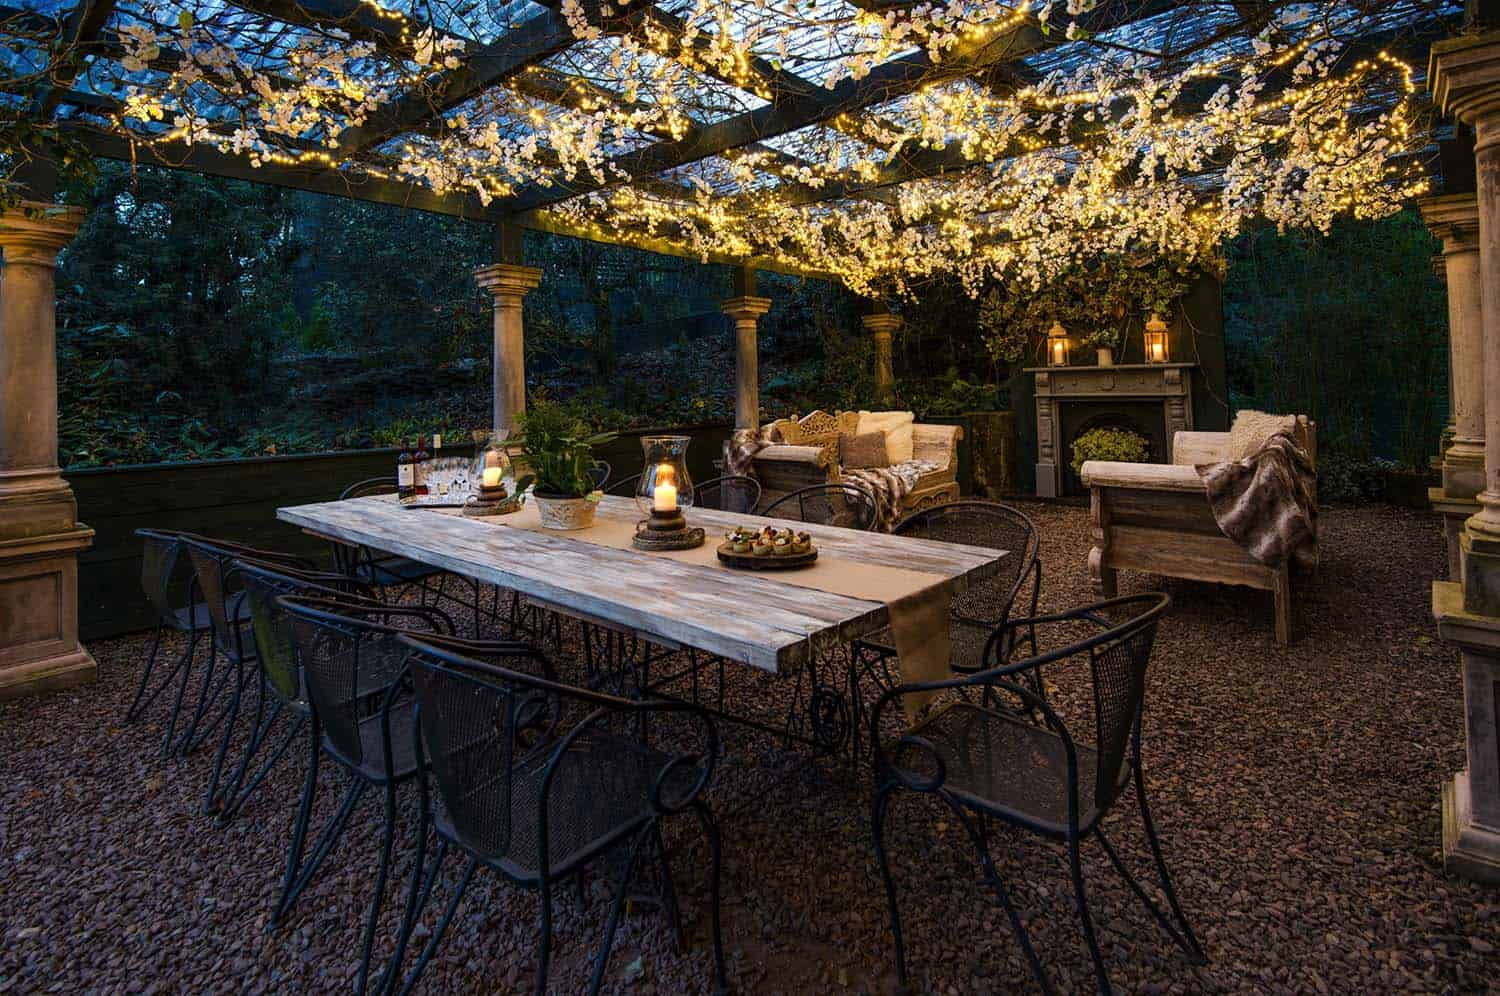 35 Brilliant and inspiring patio ideas for outdoor living ... on Courtyard Patio Ideas id=18913